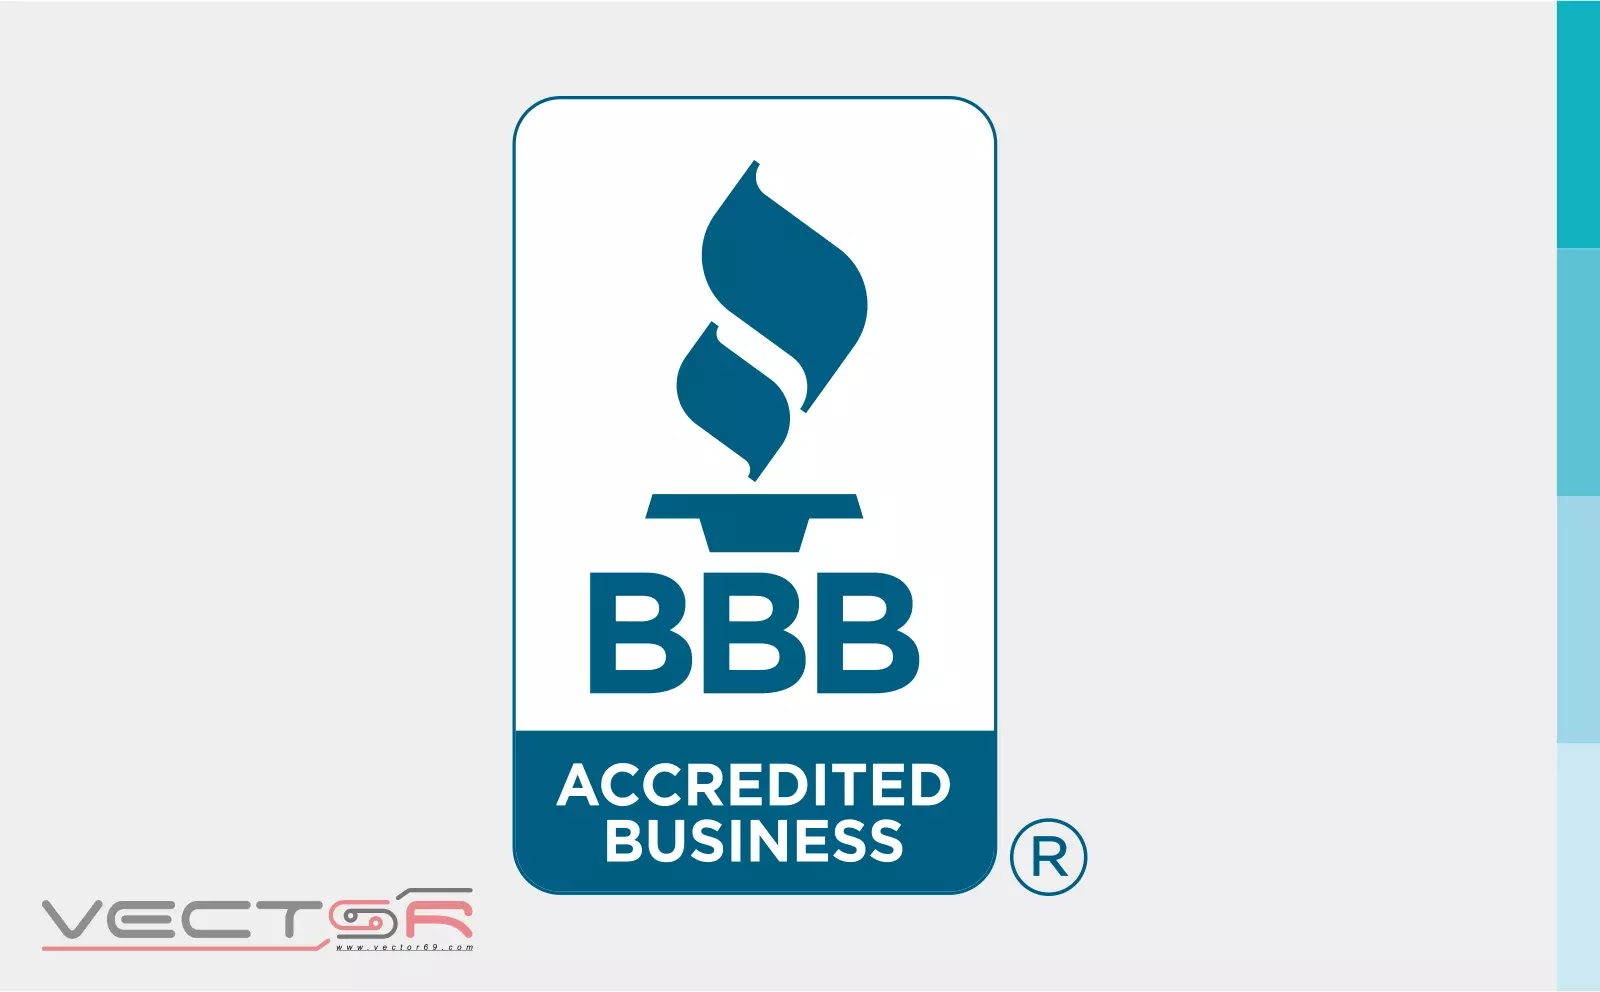 BBB Accredited Business Seal - Download Vector File SVG (Scalable Vector Graphics)